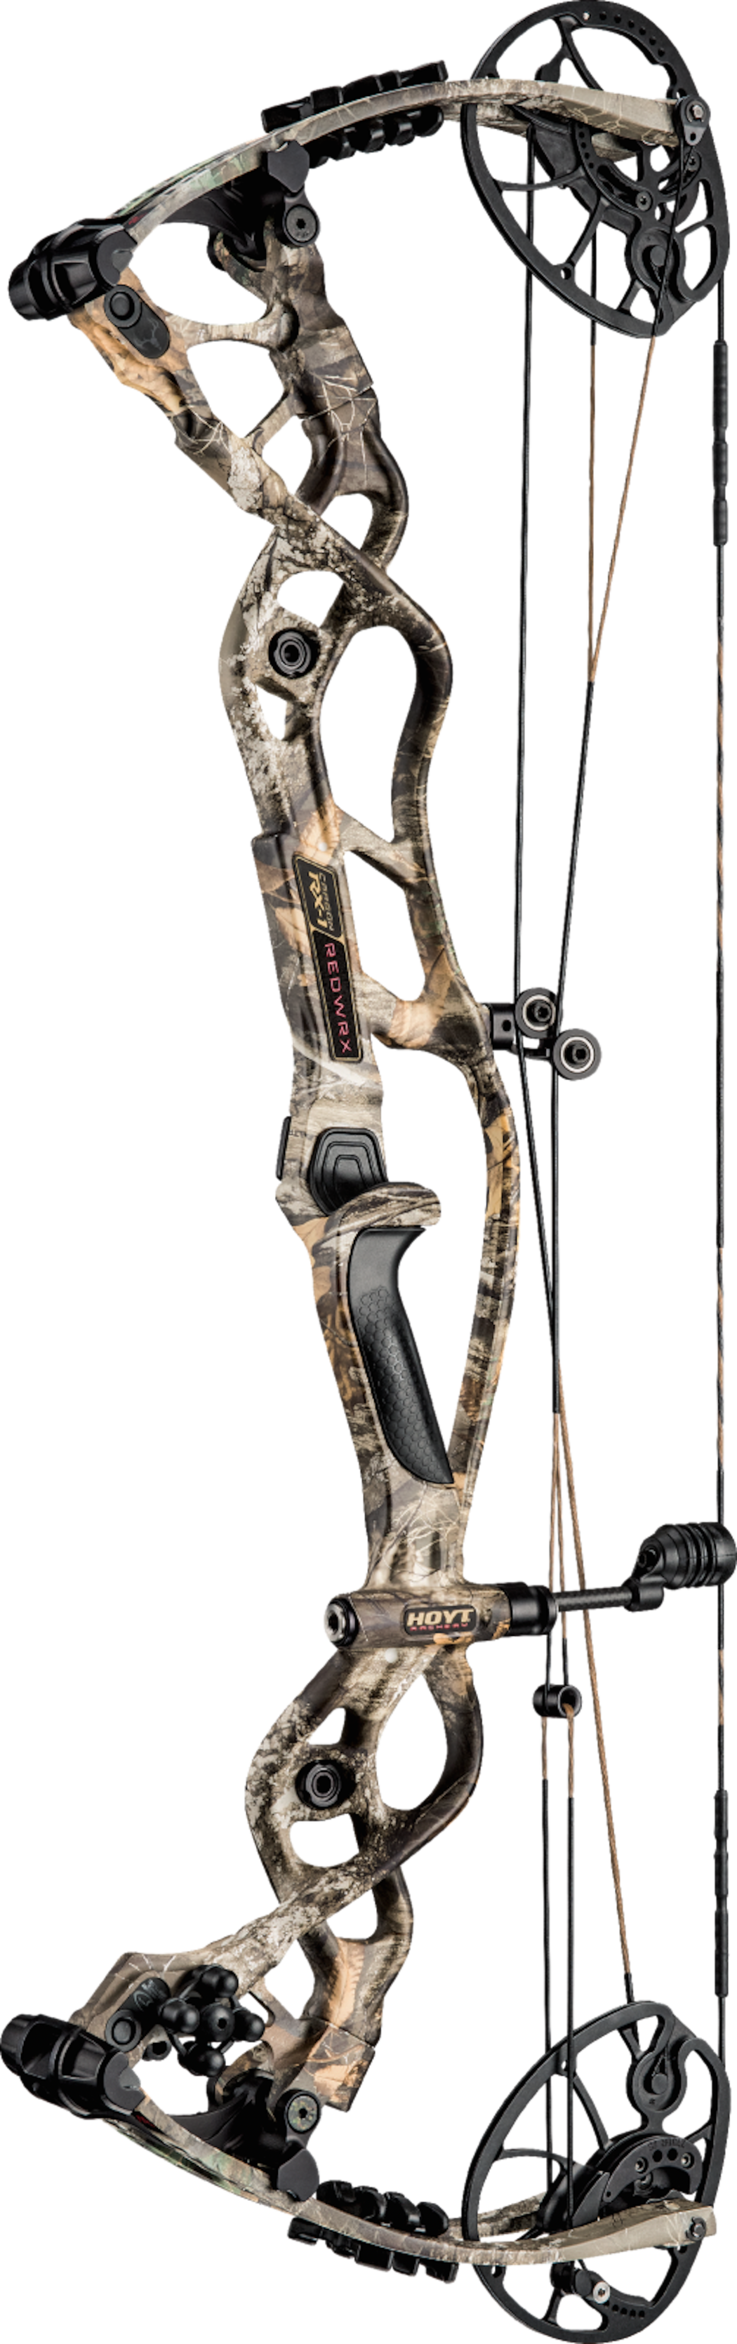 Realtree Carbon REDWRX-1